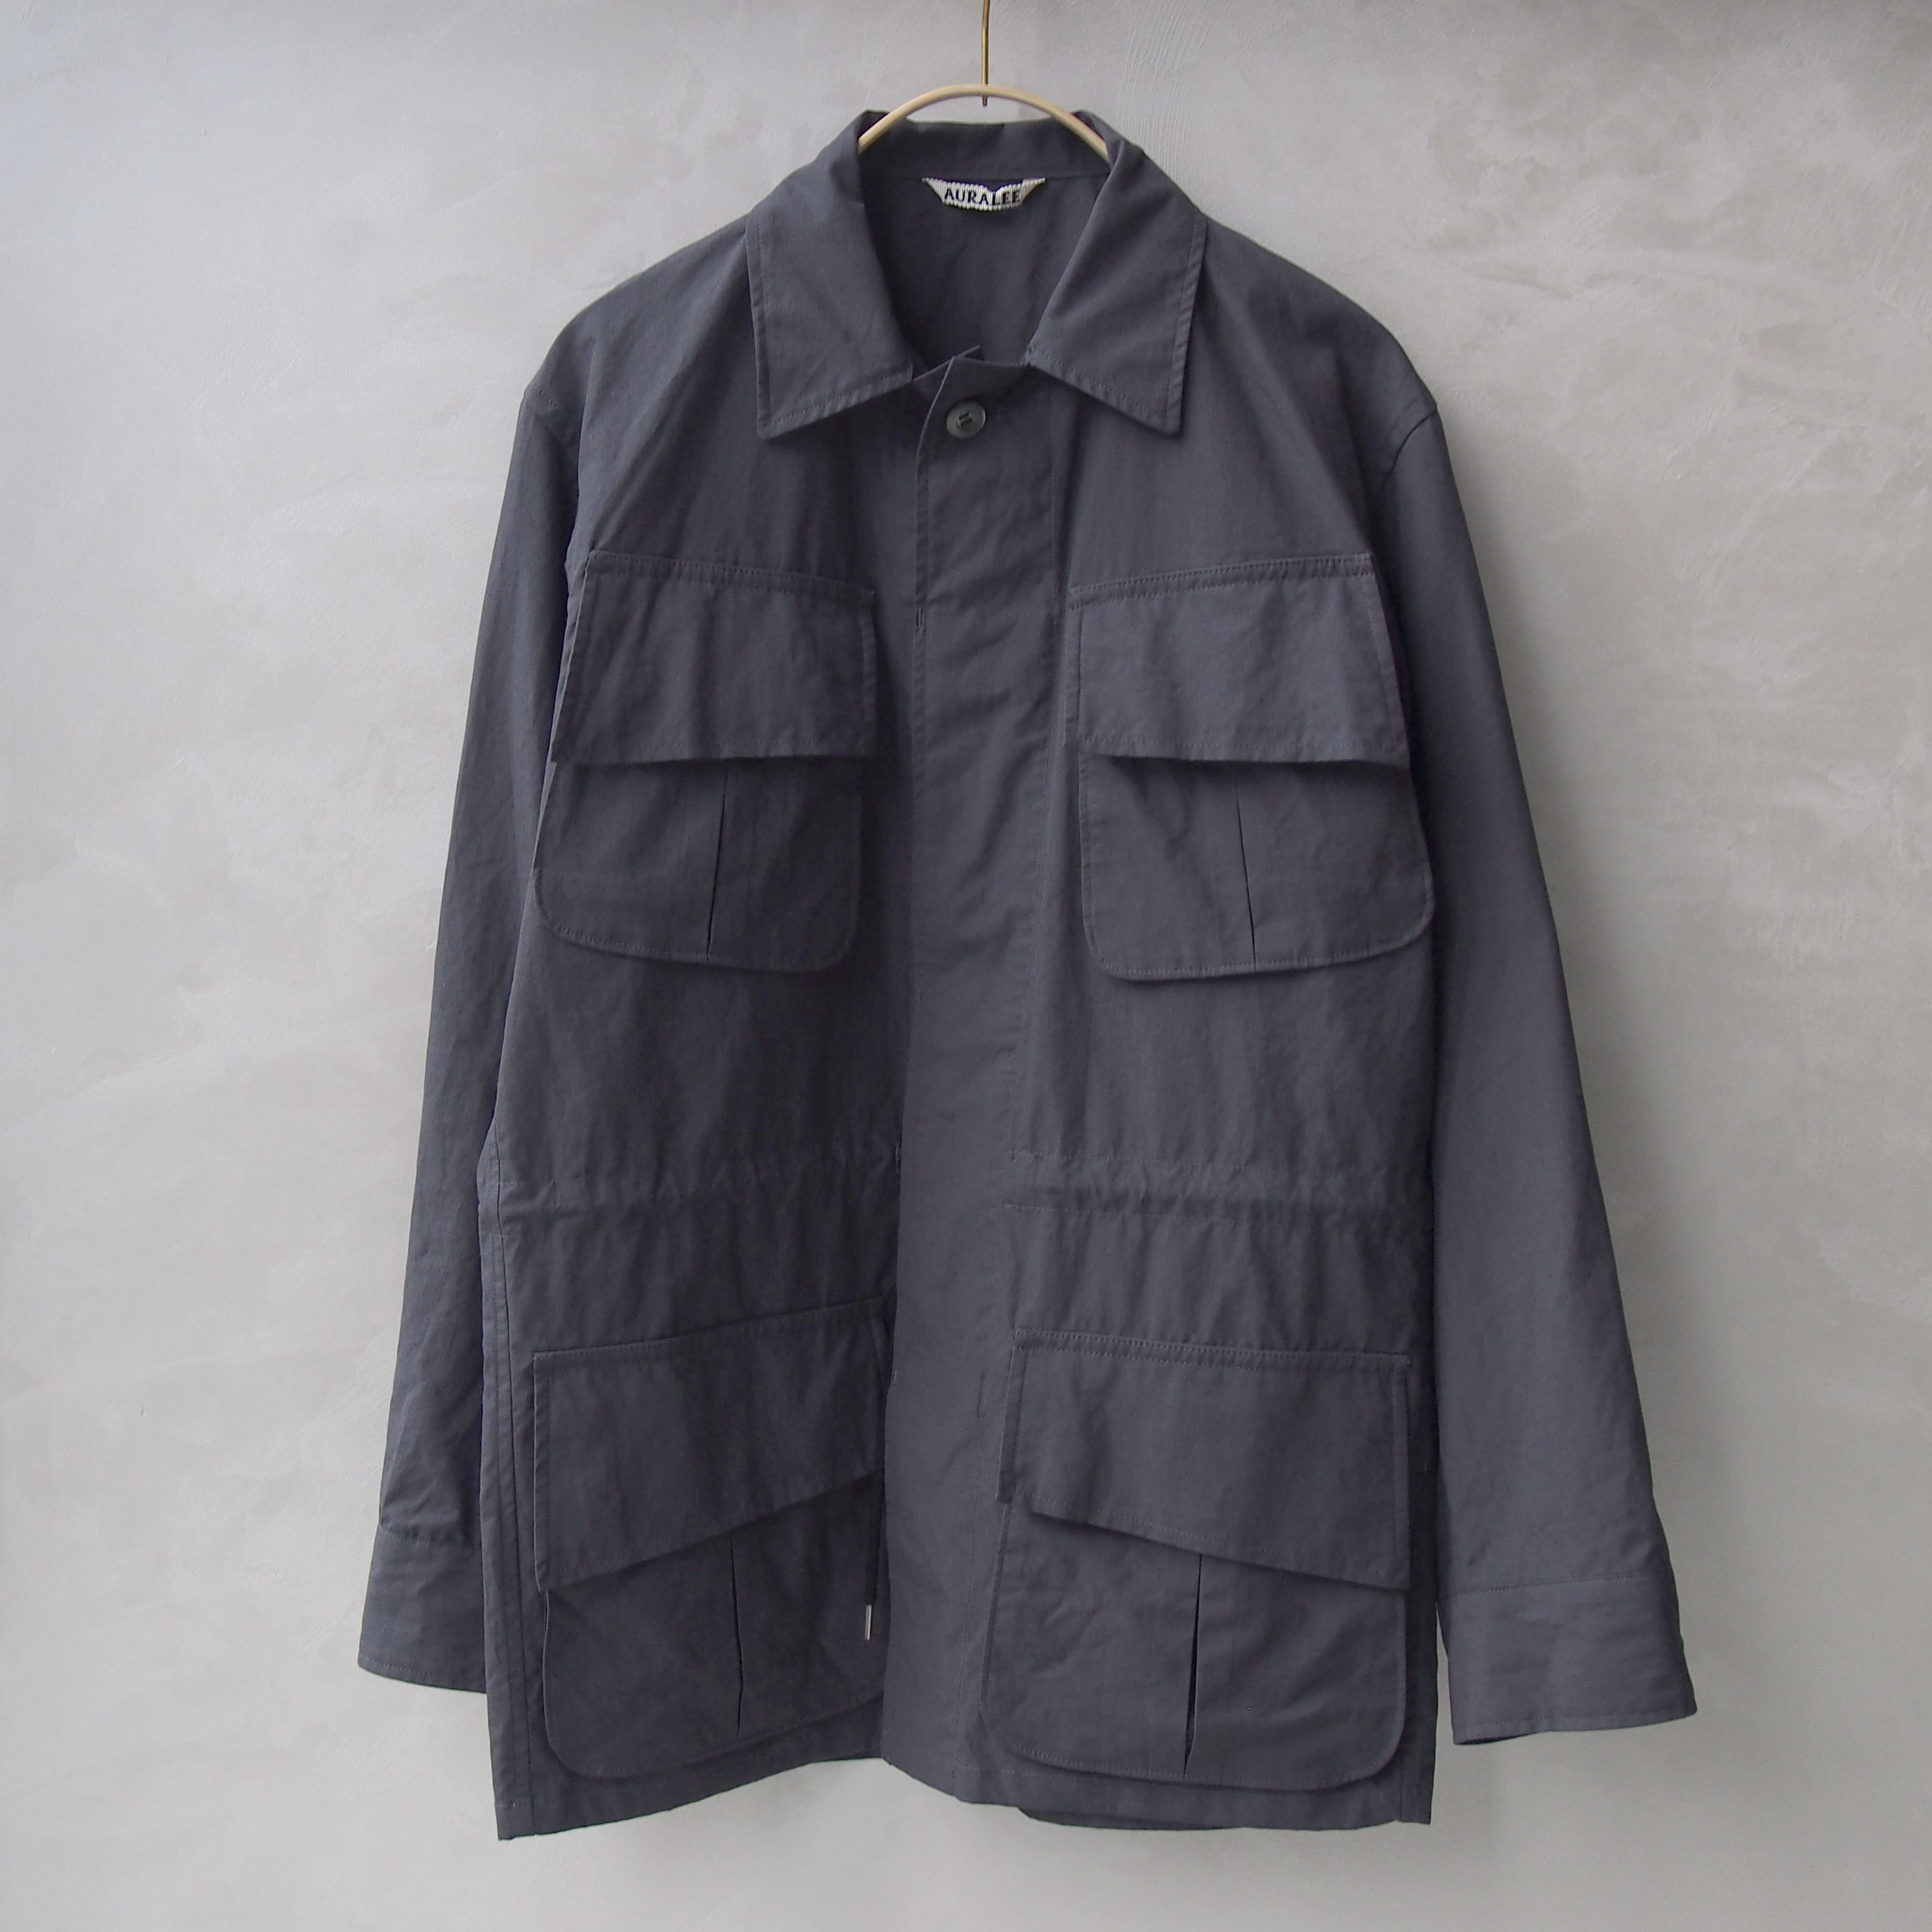 AURALEE WASHED FINX RIPSTOP FATIGUE JACKET INK BLACK